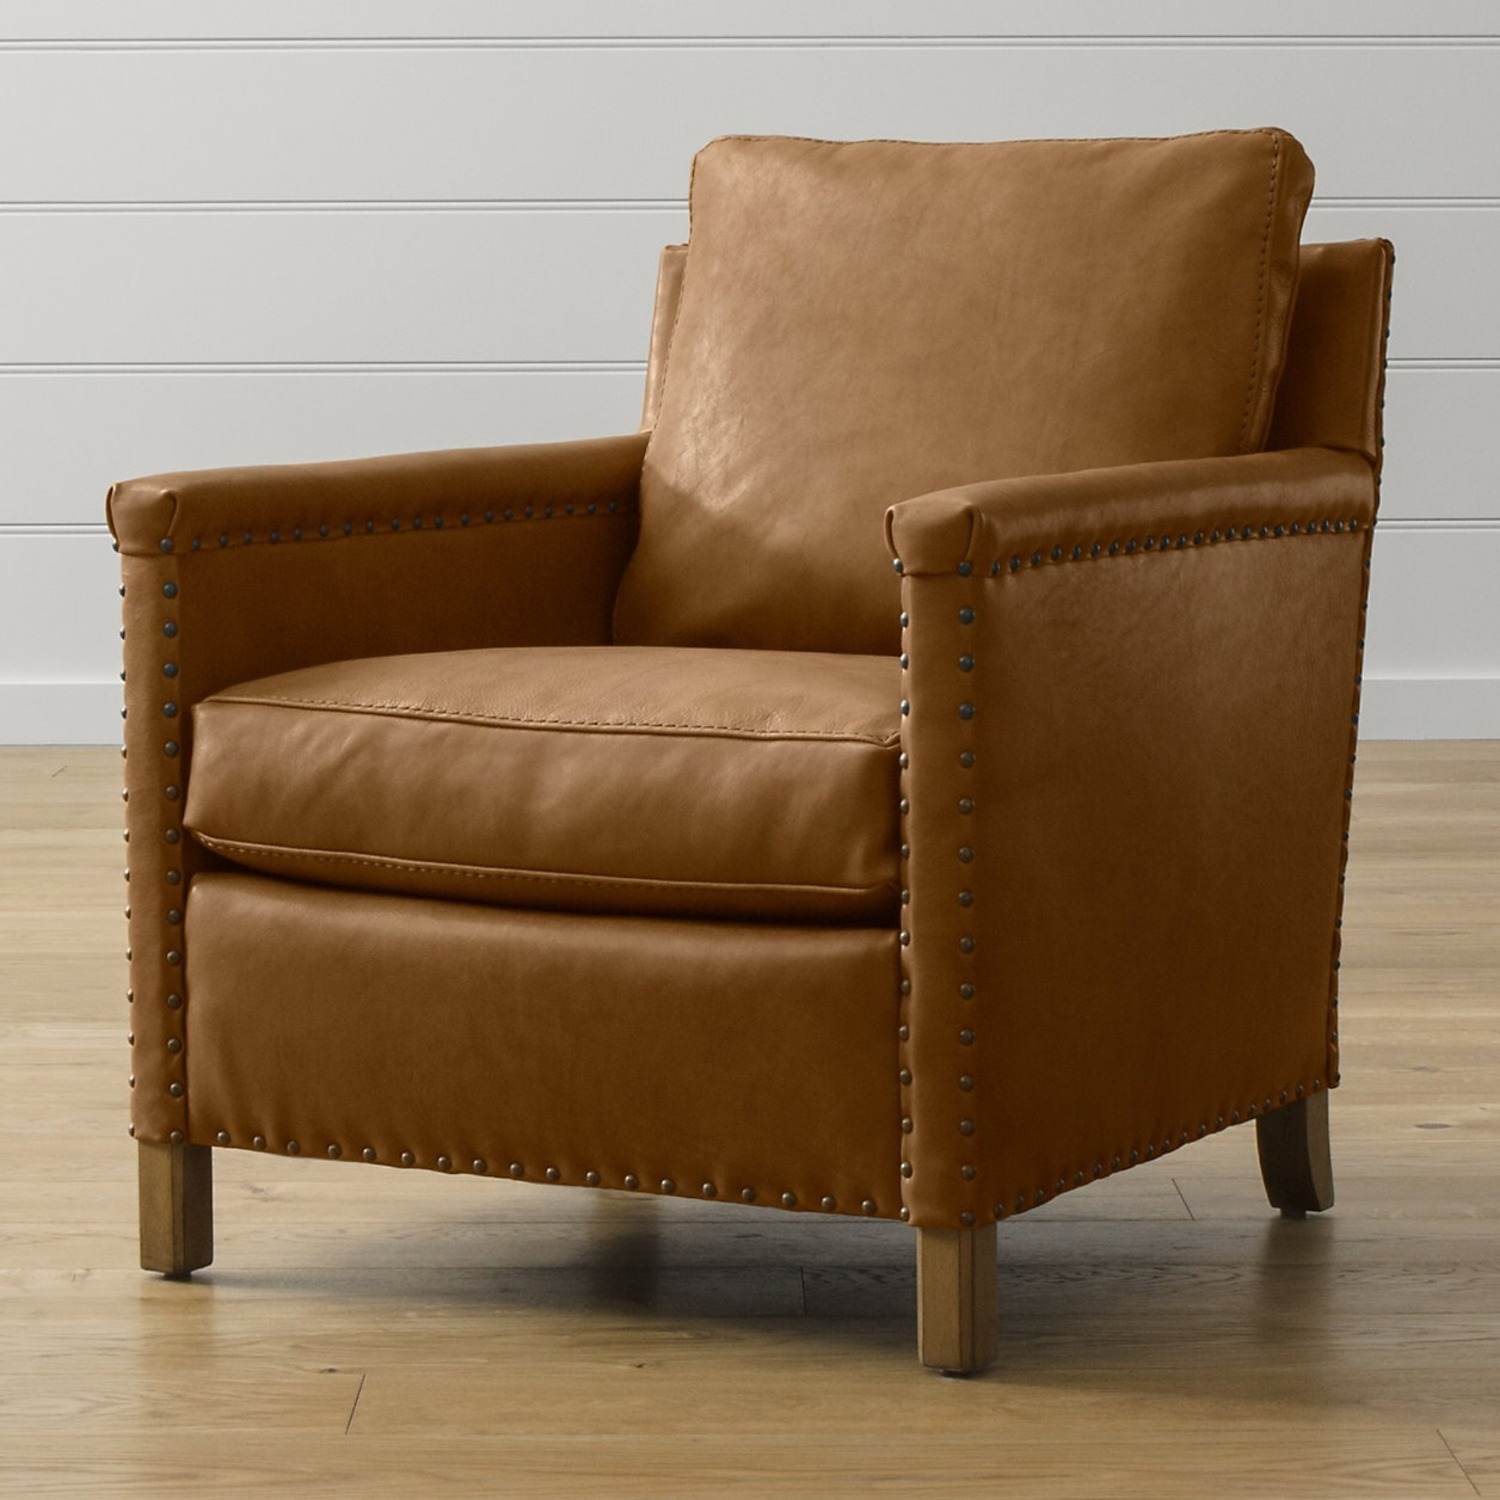 Crate & Barrel Soft Brown Leather Armchair - image-1